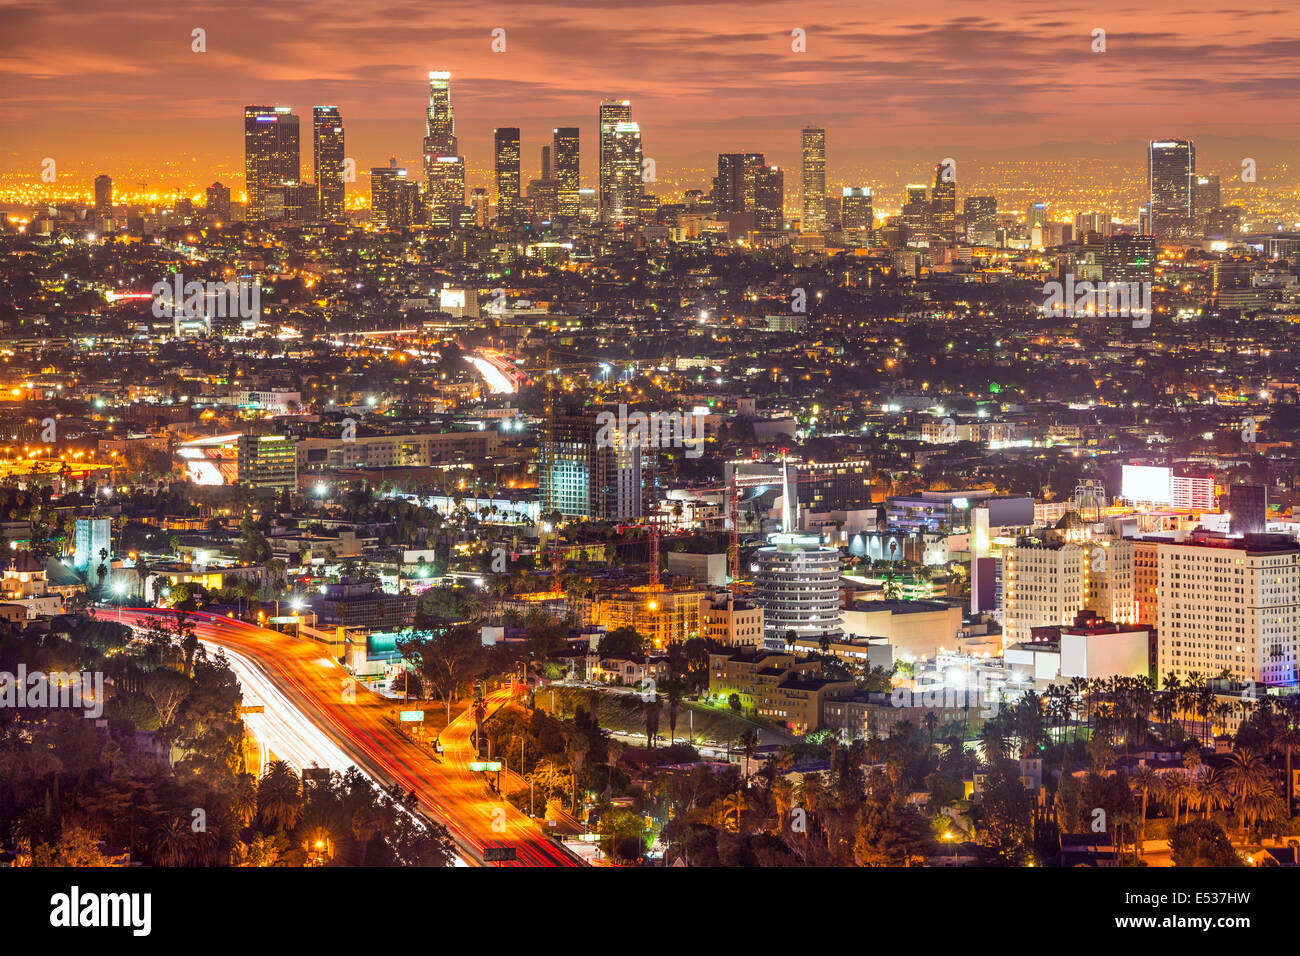 Los Angeles, California, USA downtown skyline at night. - Stock Image